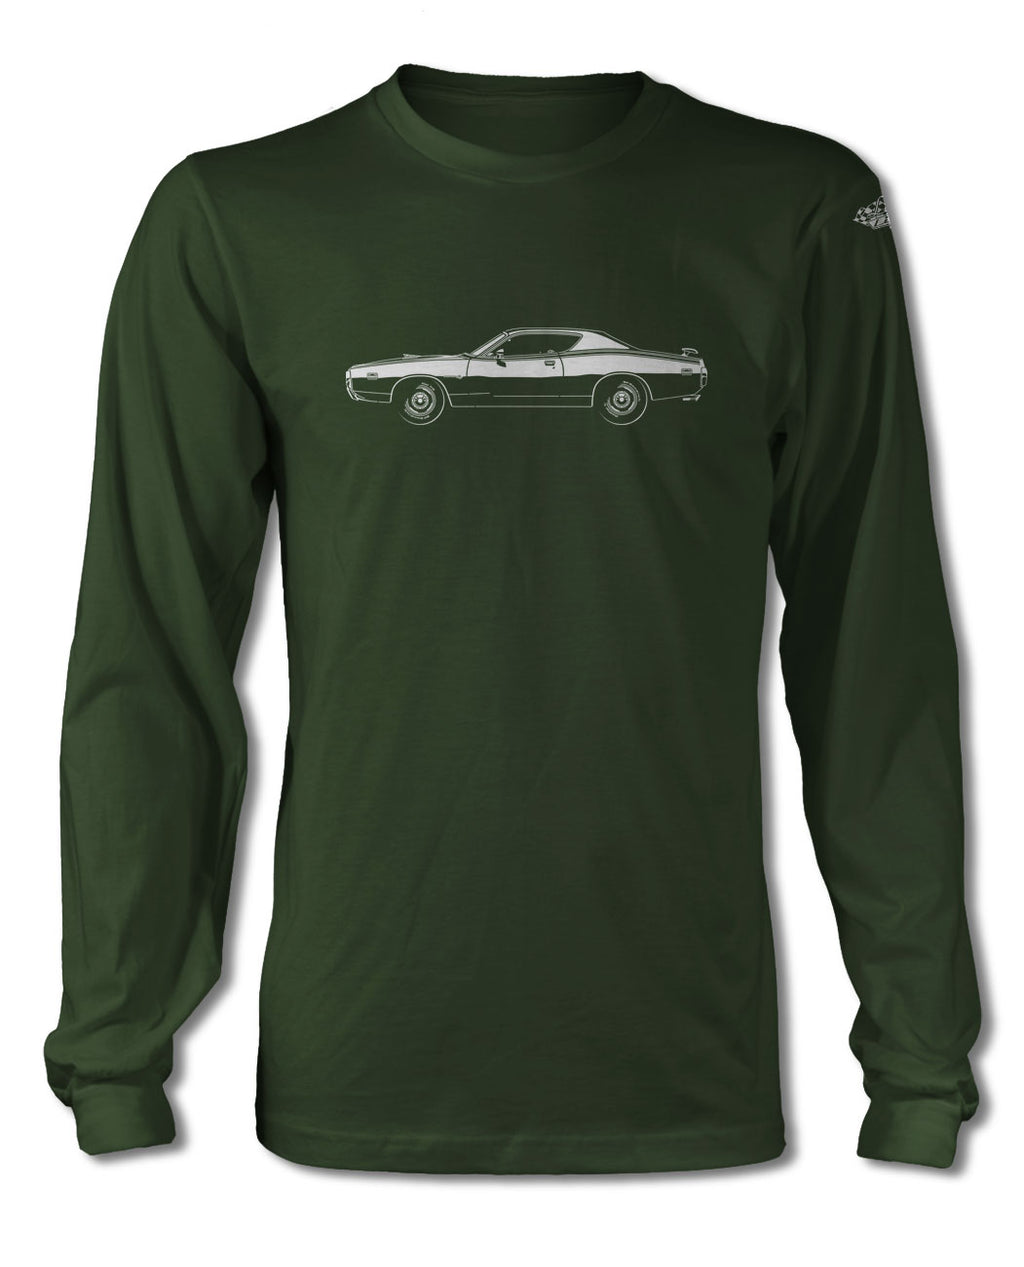 1971 Dodge Charger Super Bee Coupe T-Shirt - Long Sleeves - Side View